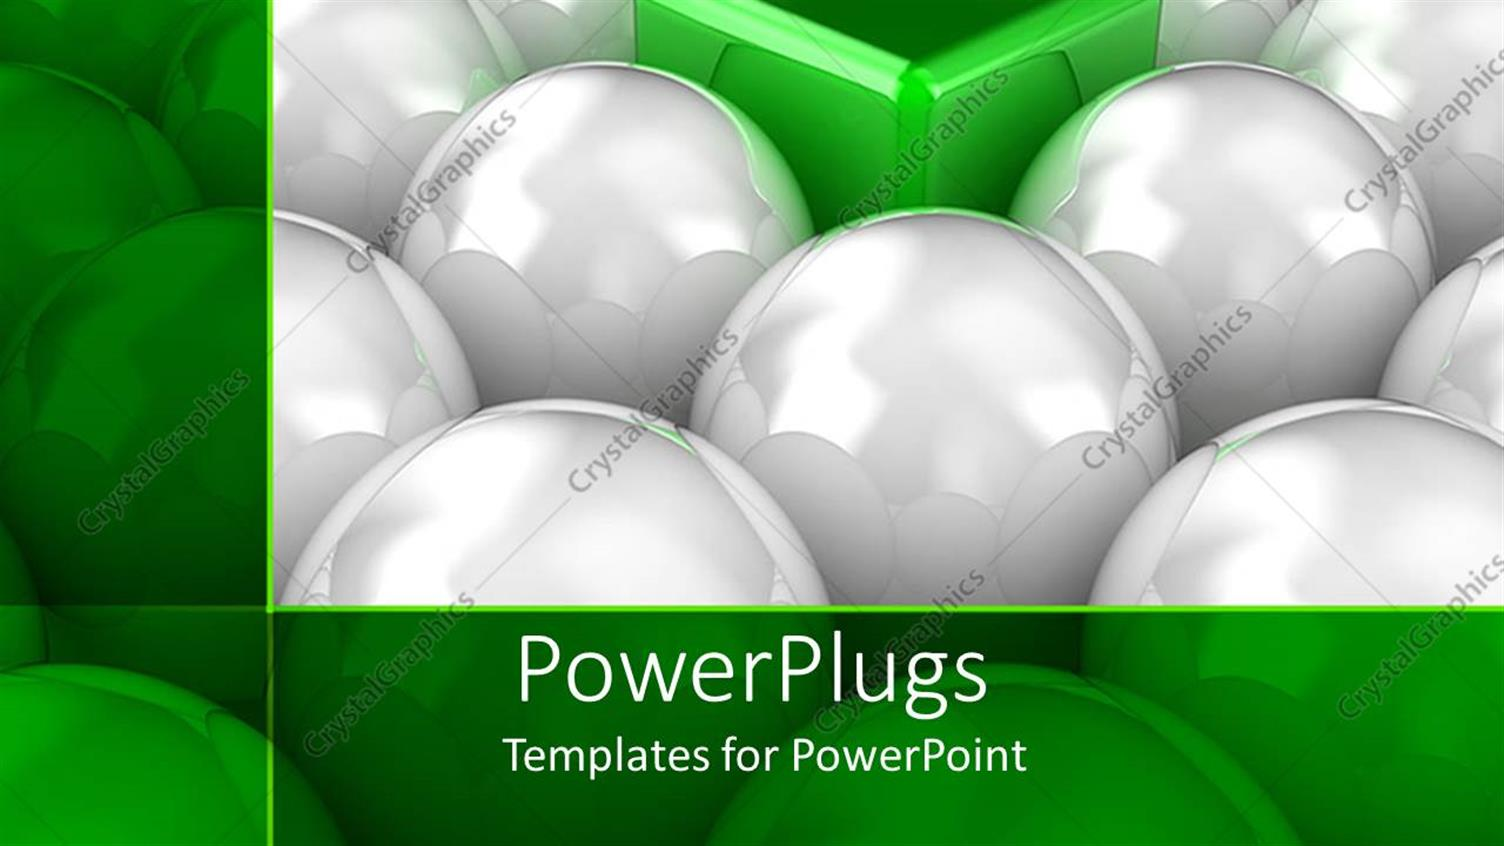 PowerPoint Template Displaying Lots of White Balls with a Green Cube in their Middle